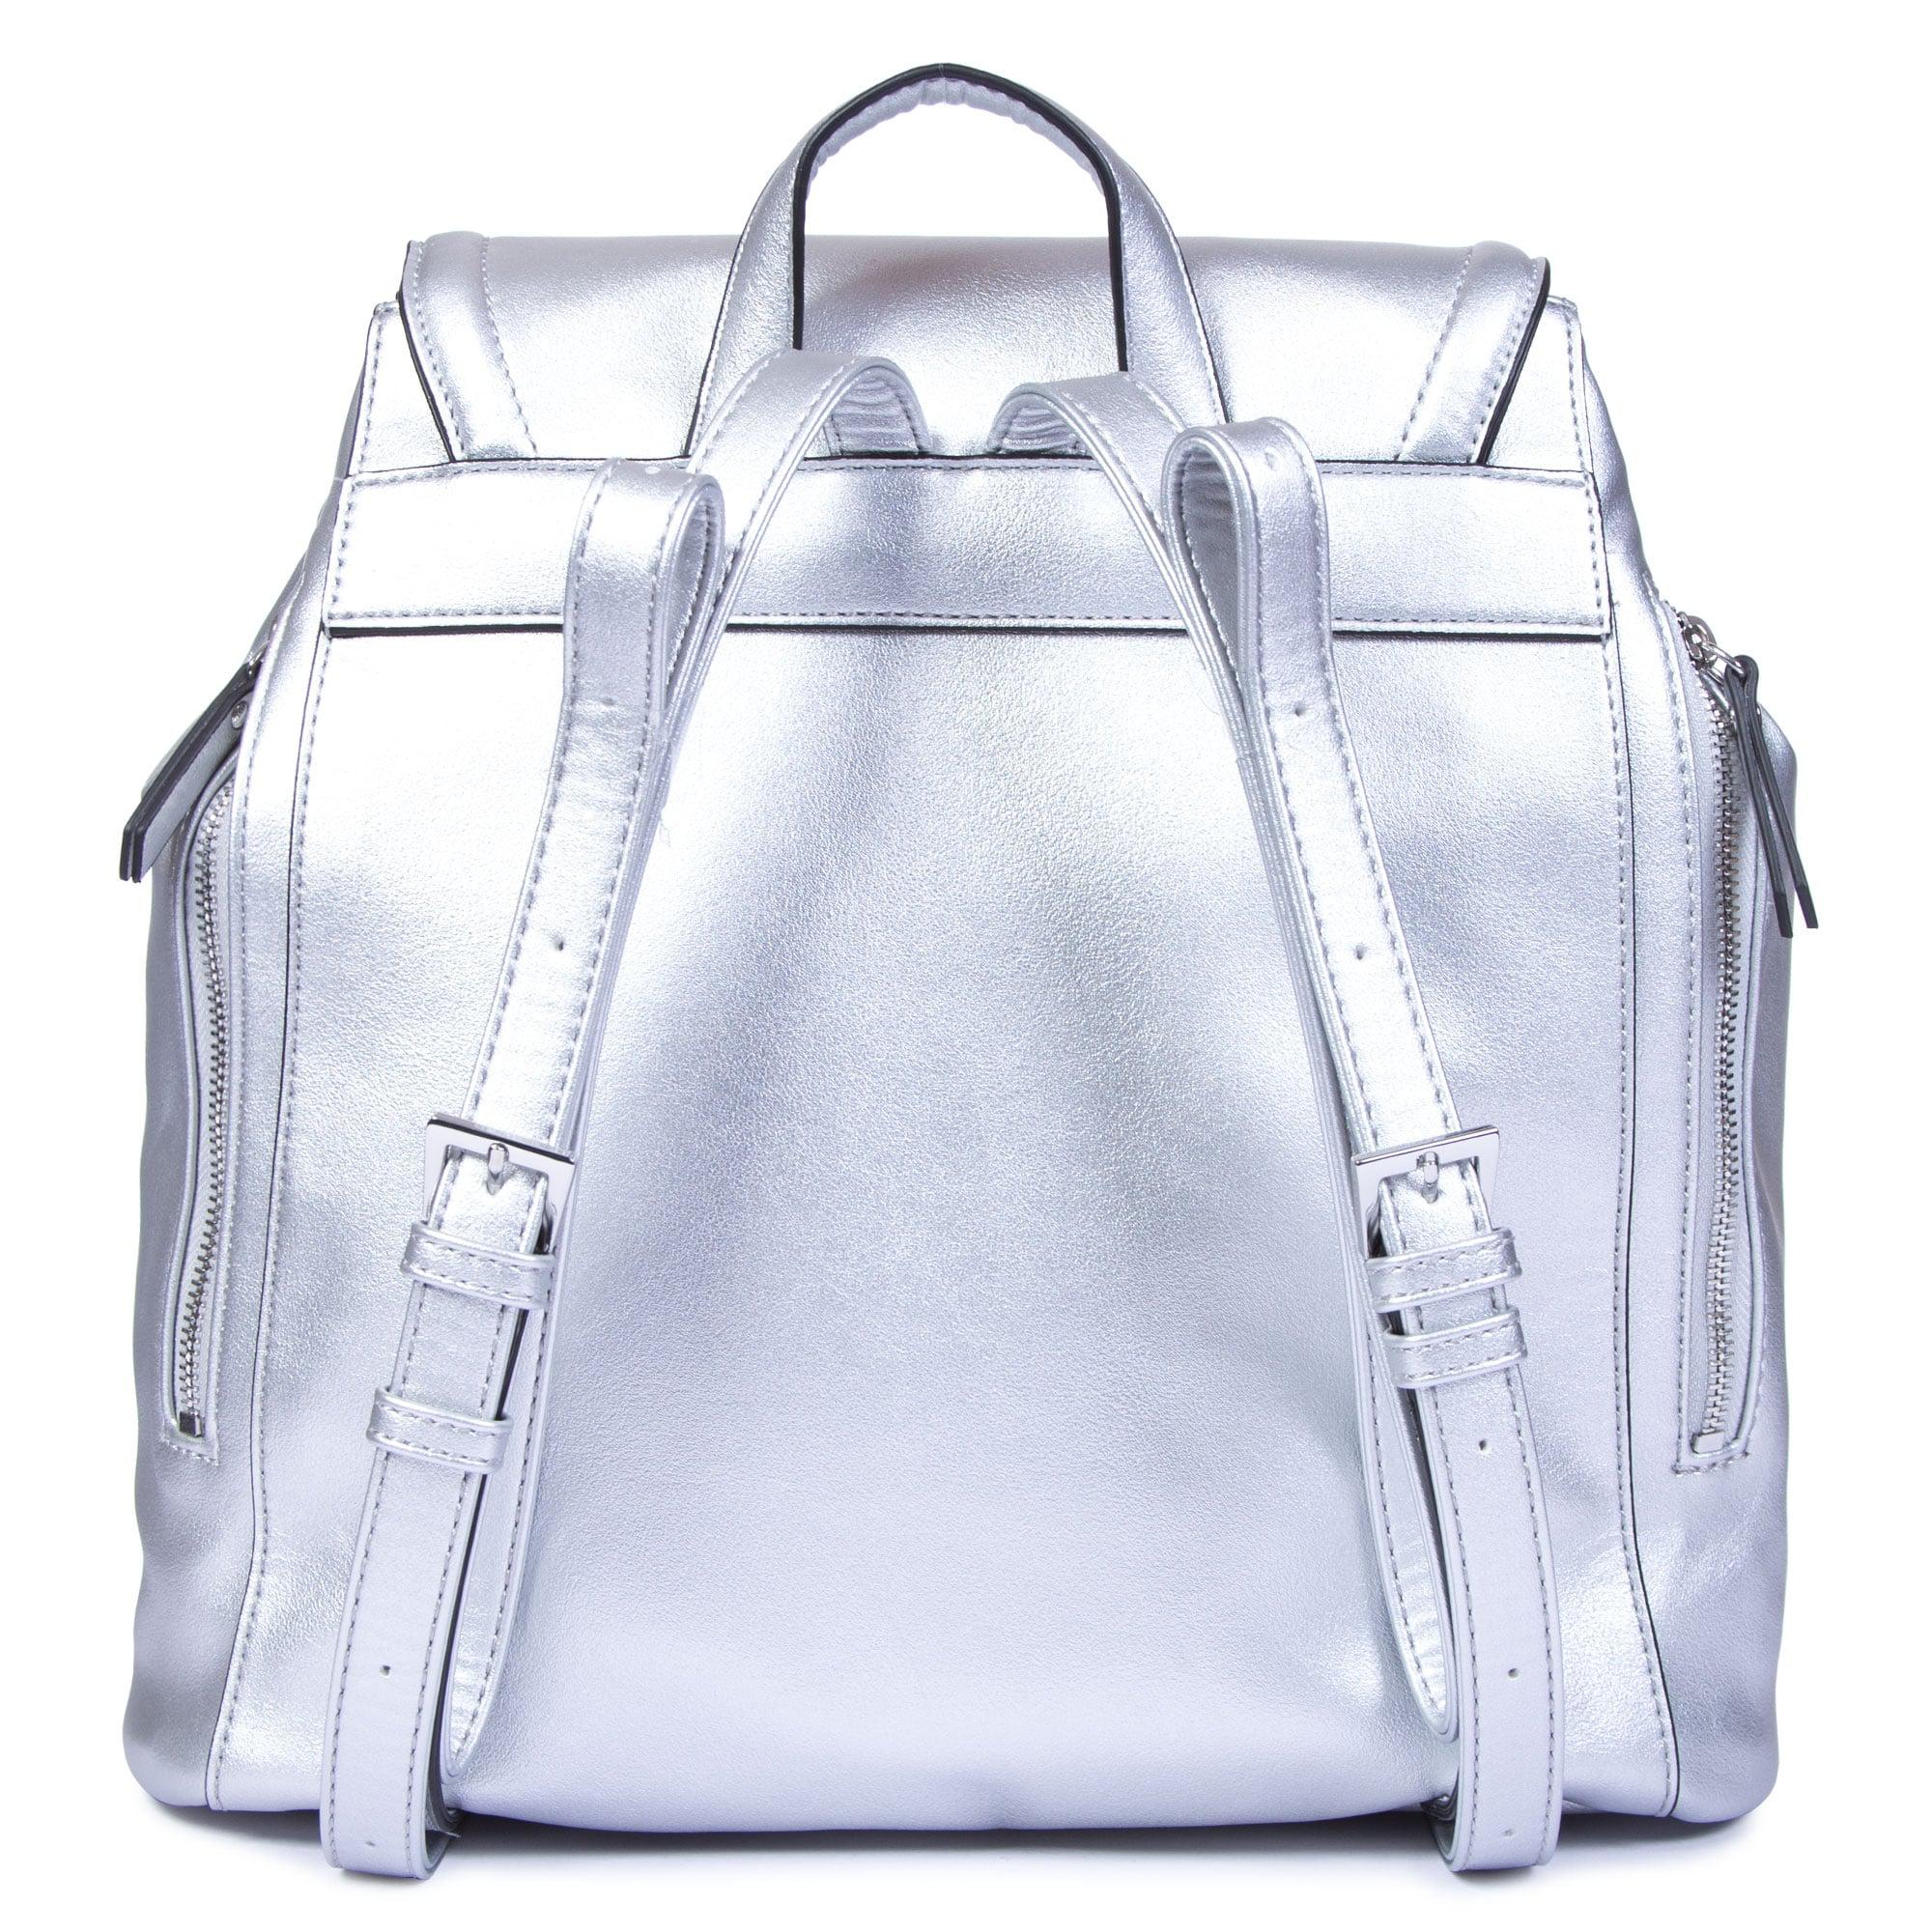 Guess Cotton Terra Metallic Backpack In Silver